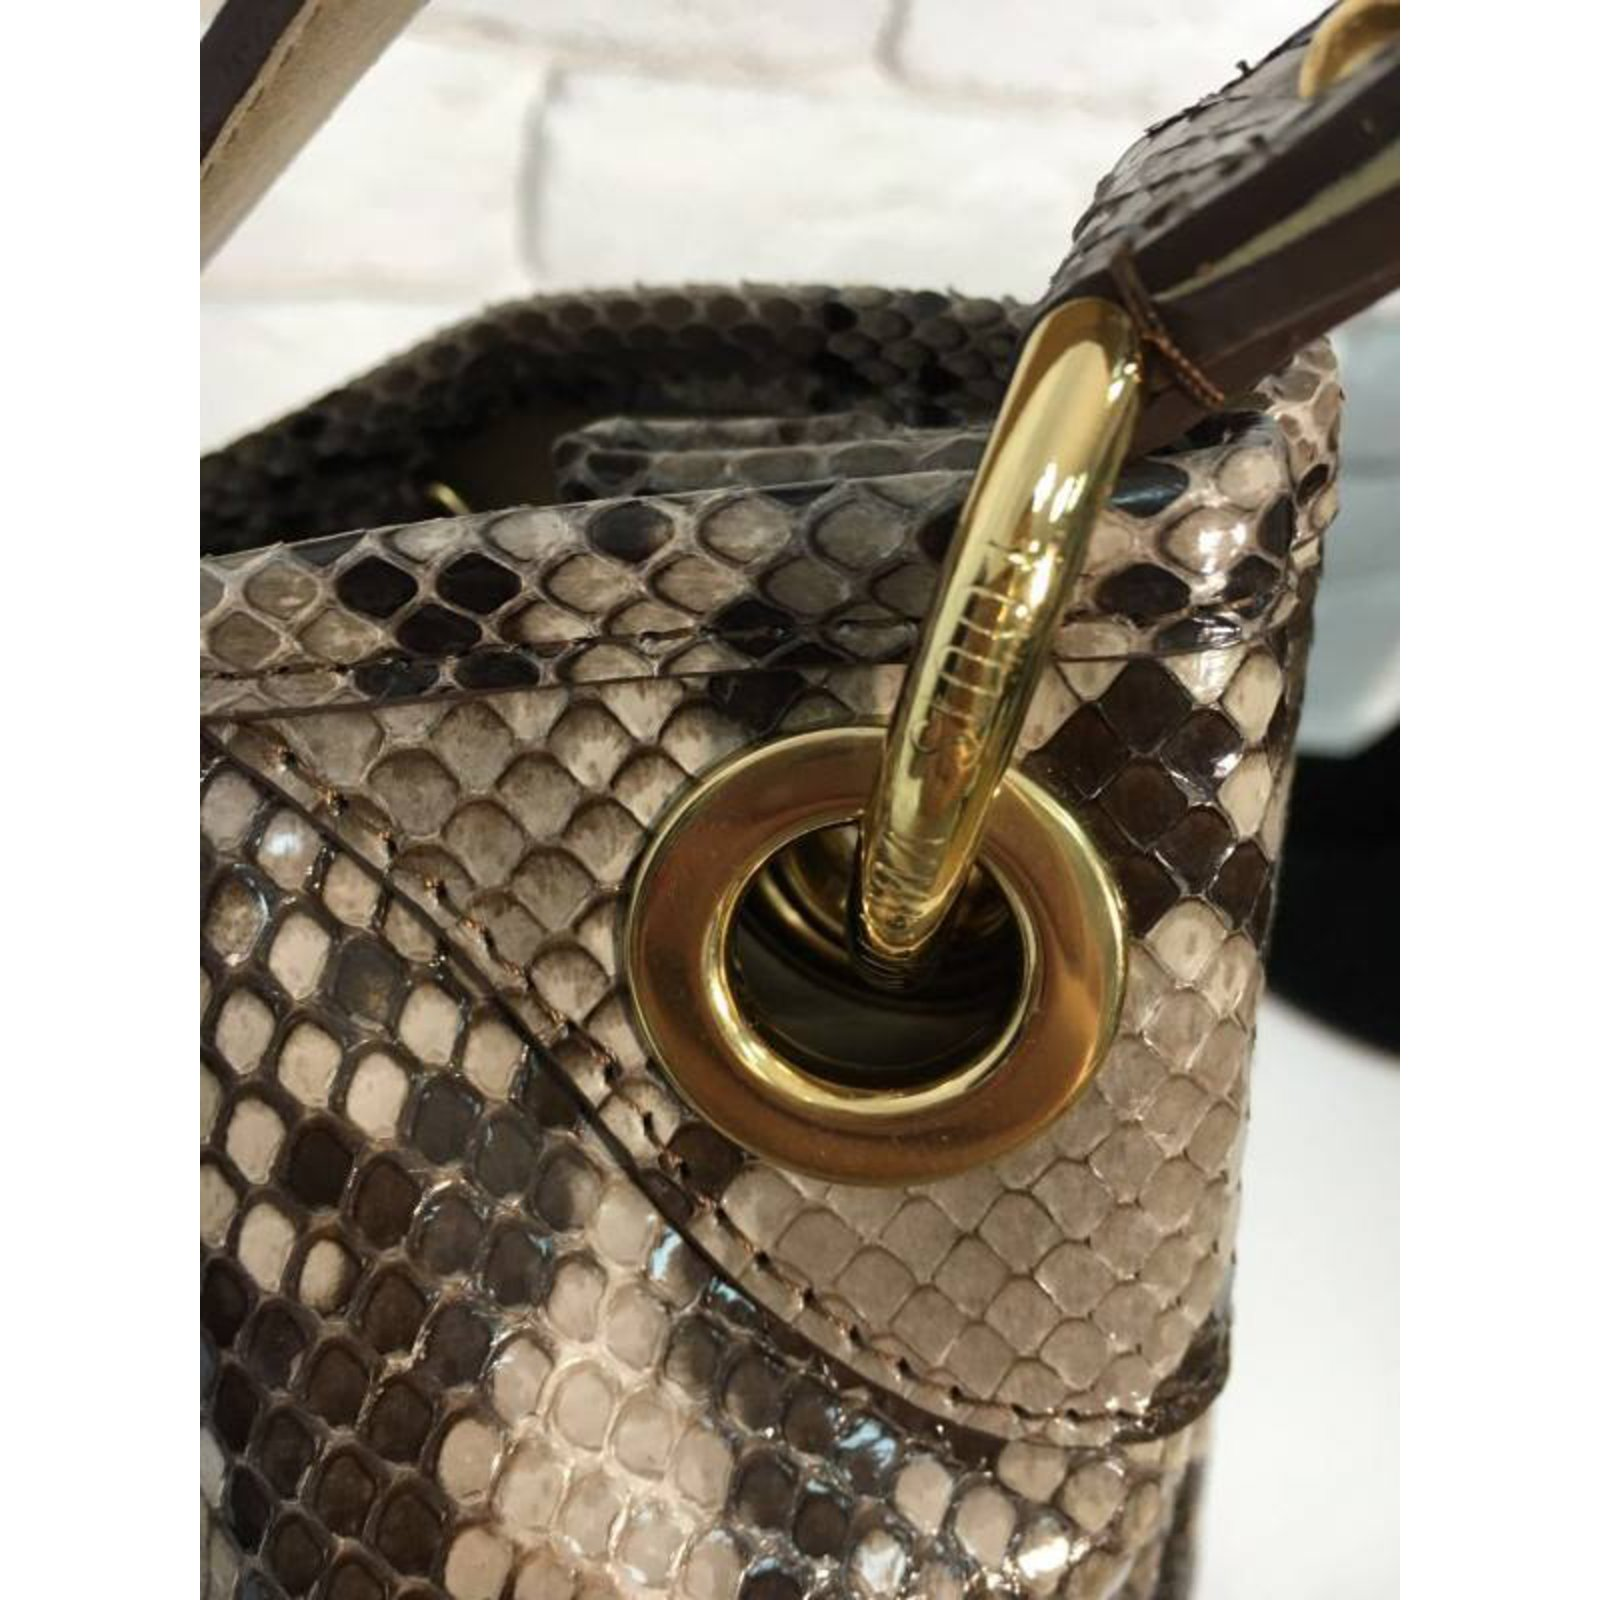 c24f2a9758dd Louis Vuitton Limited Edition Python Galliera Smeralda GM Handbags Exotic leather  Python print ref.34142 - Joli Closet